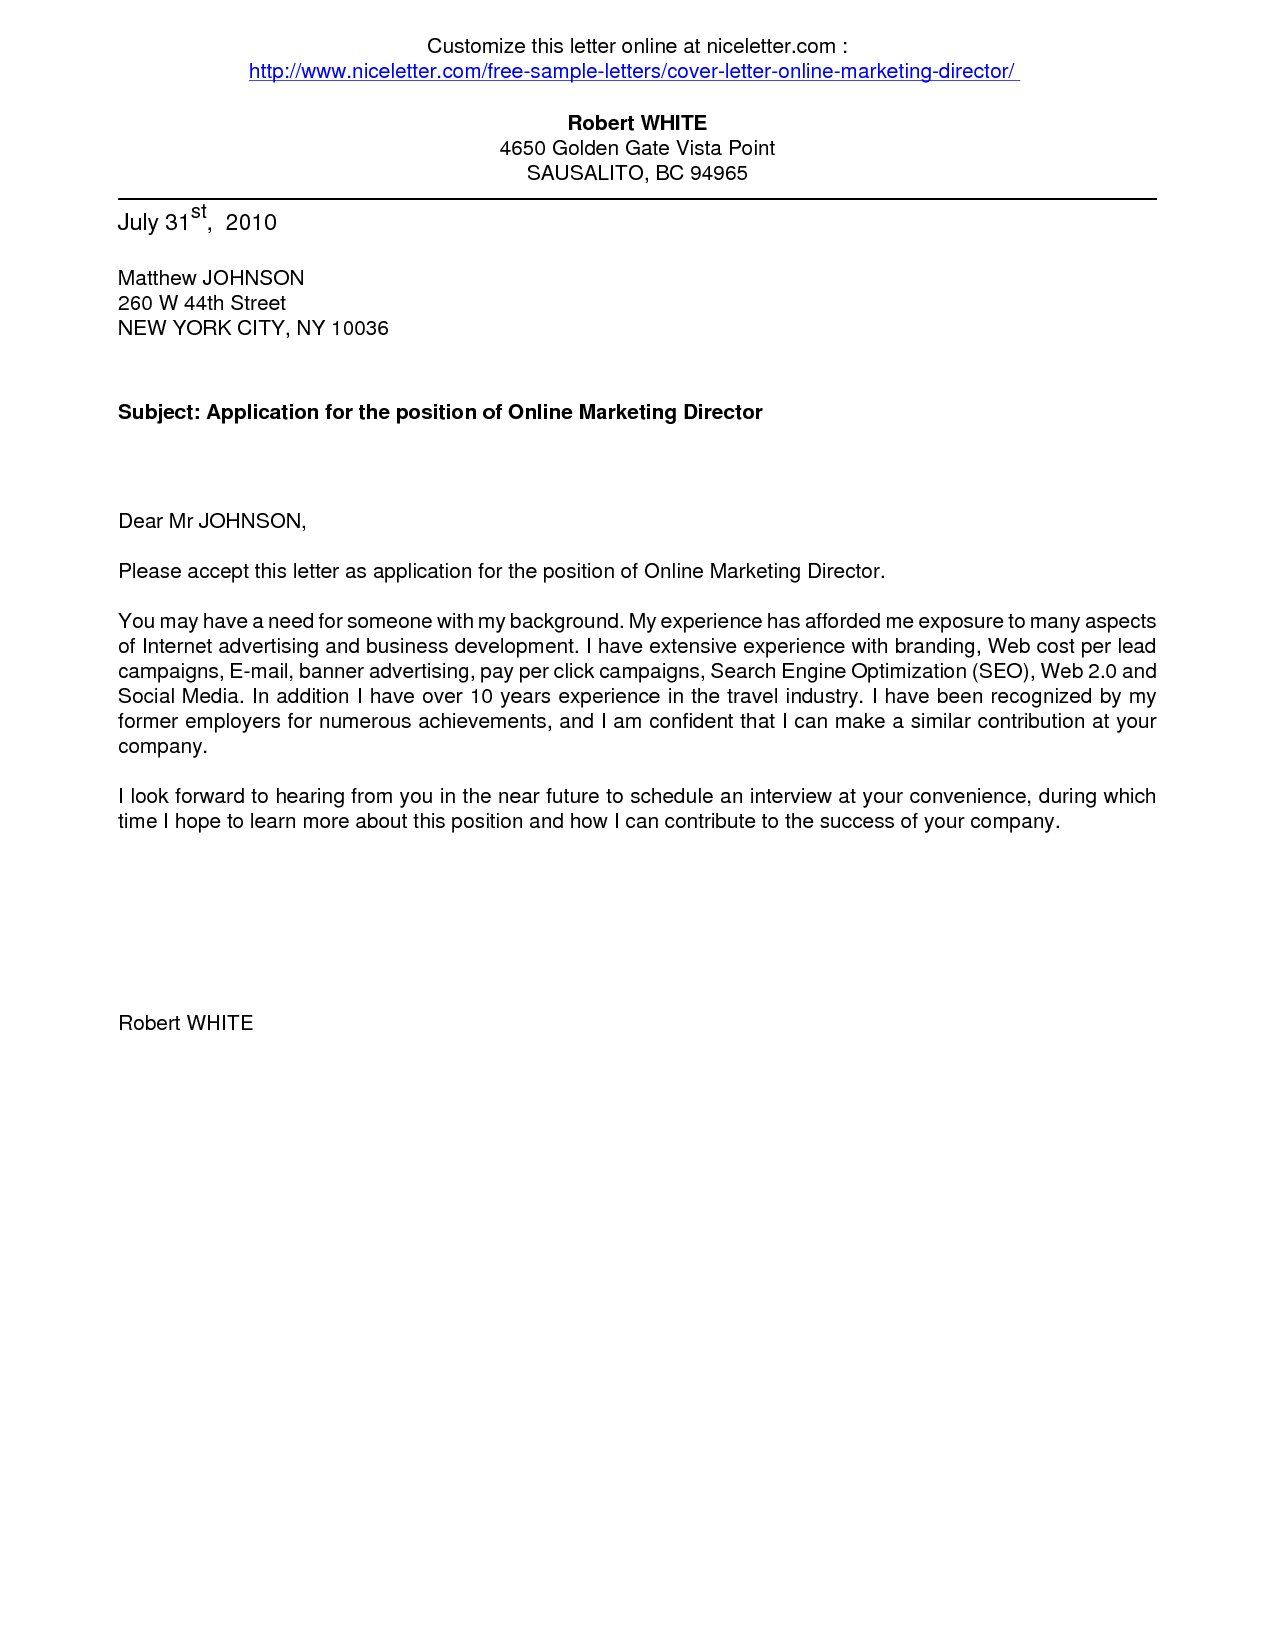 Cover Letter Template Pdf Free - Cover Letters Cover Letter for Line Application Business